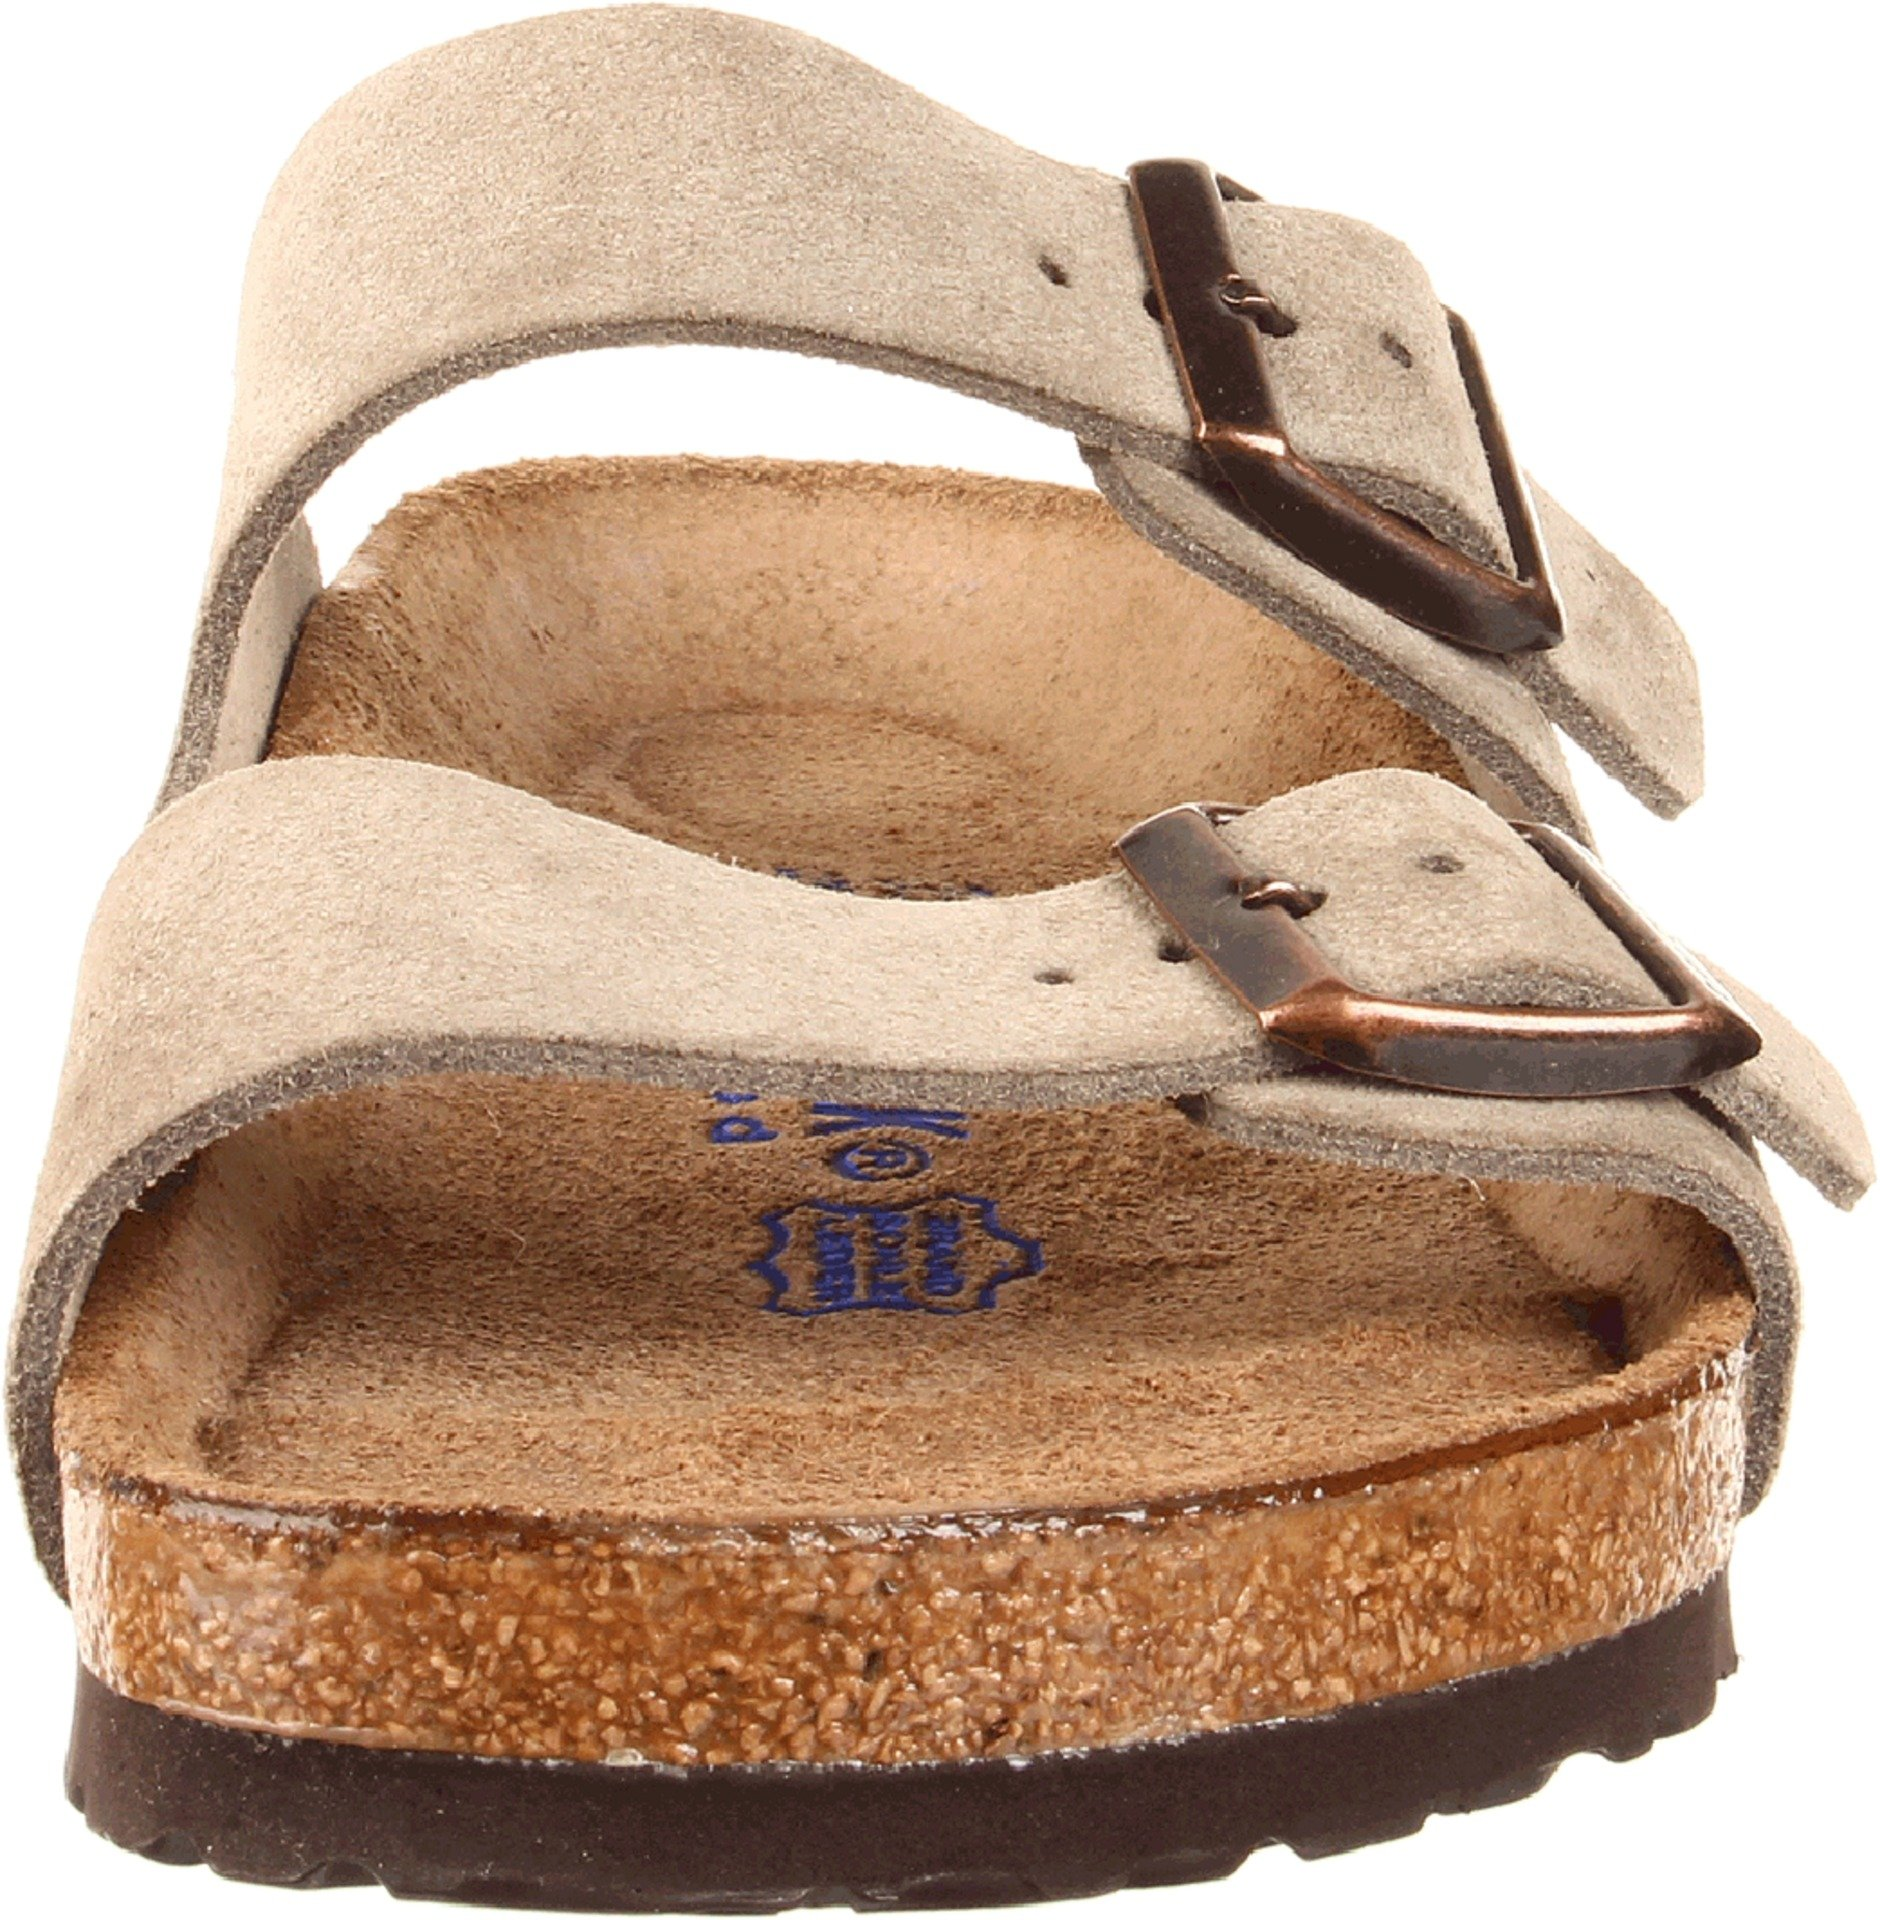 Birkenstock Unisex Arizona Taupe Suede Soft Foot Bed Sandals - 38 M EU / 7-7.5 B(M) US by Birkenstock (Image #4)